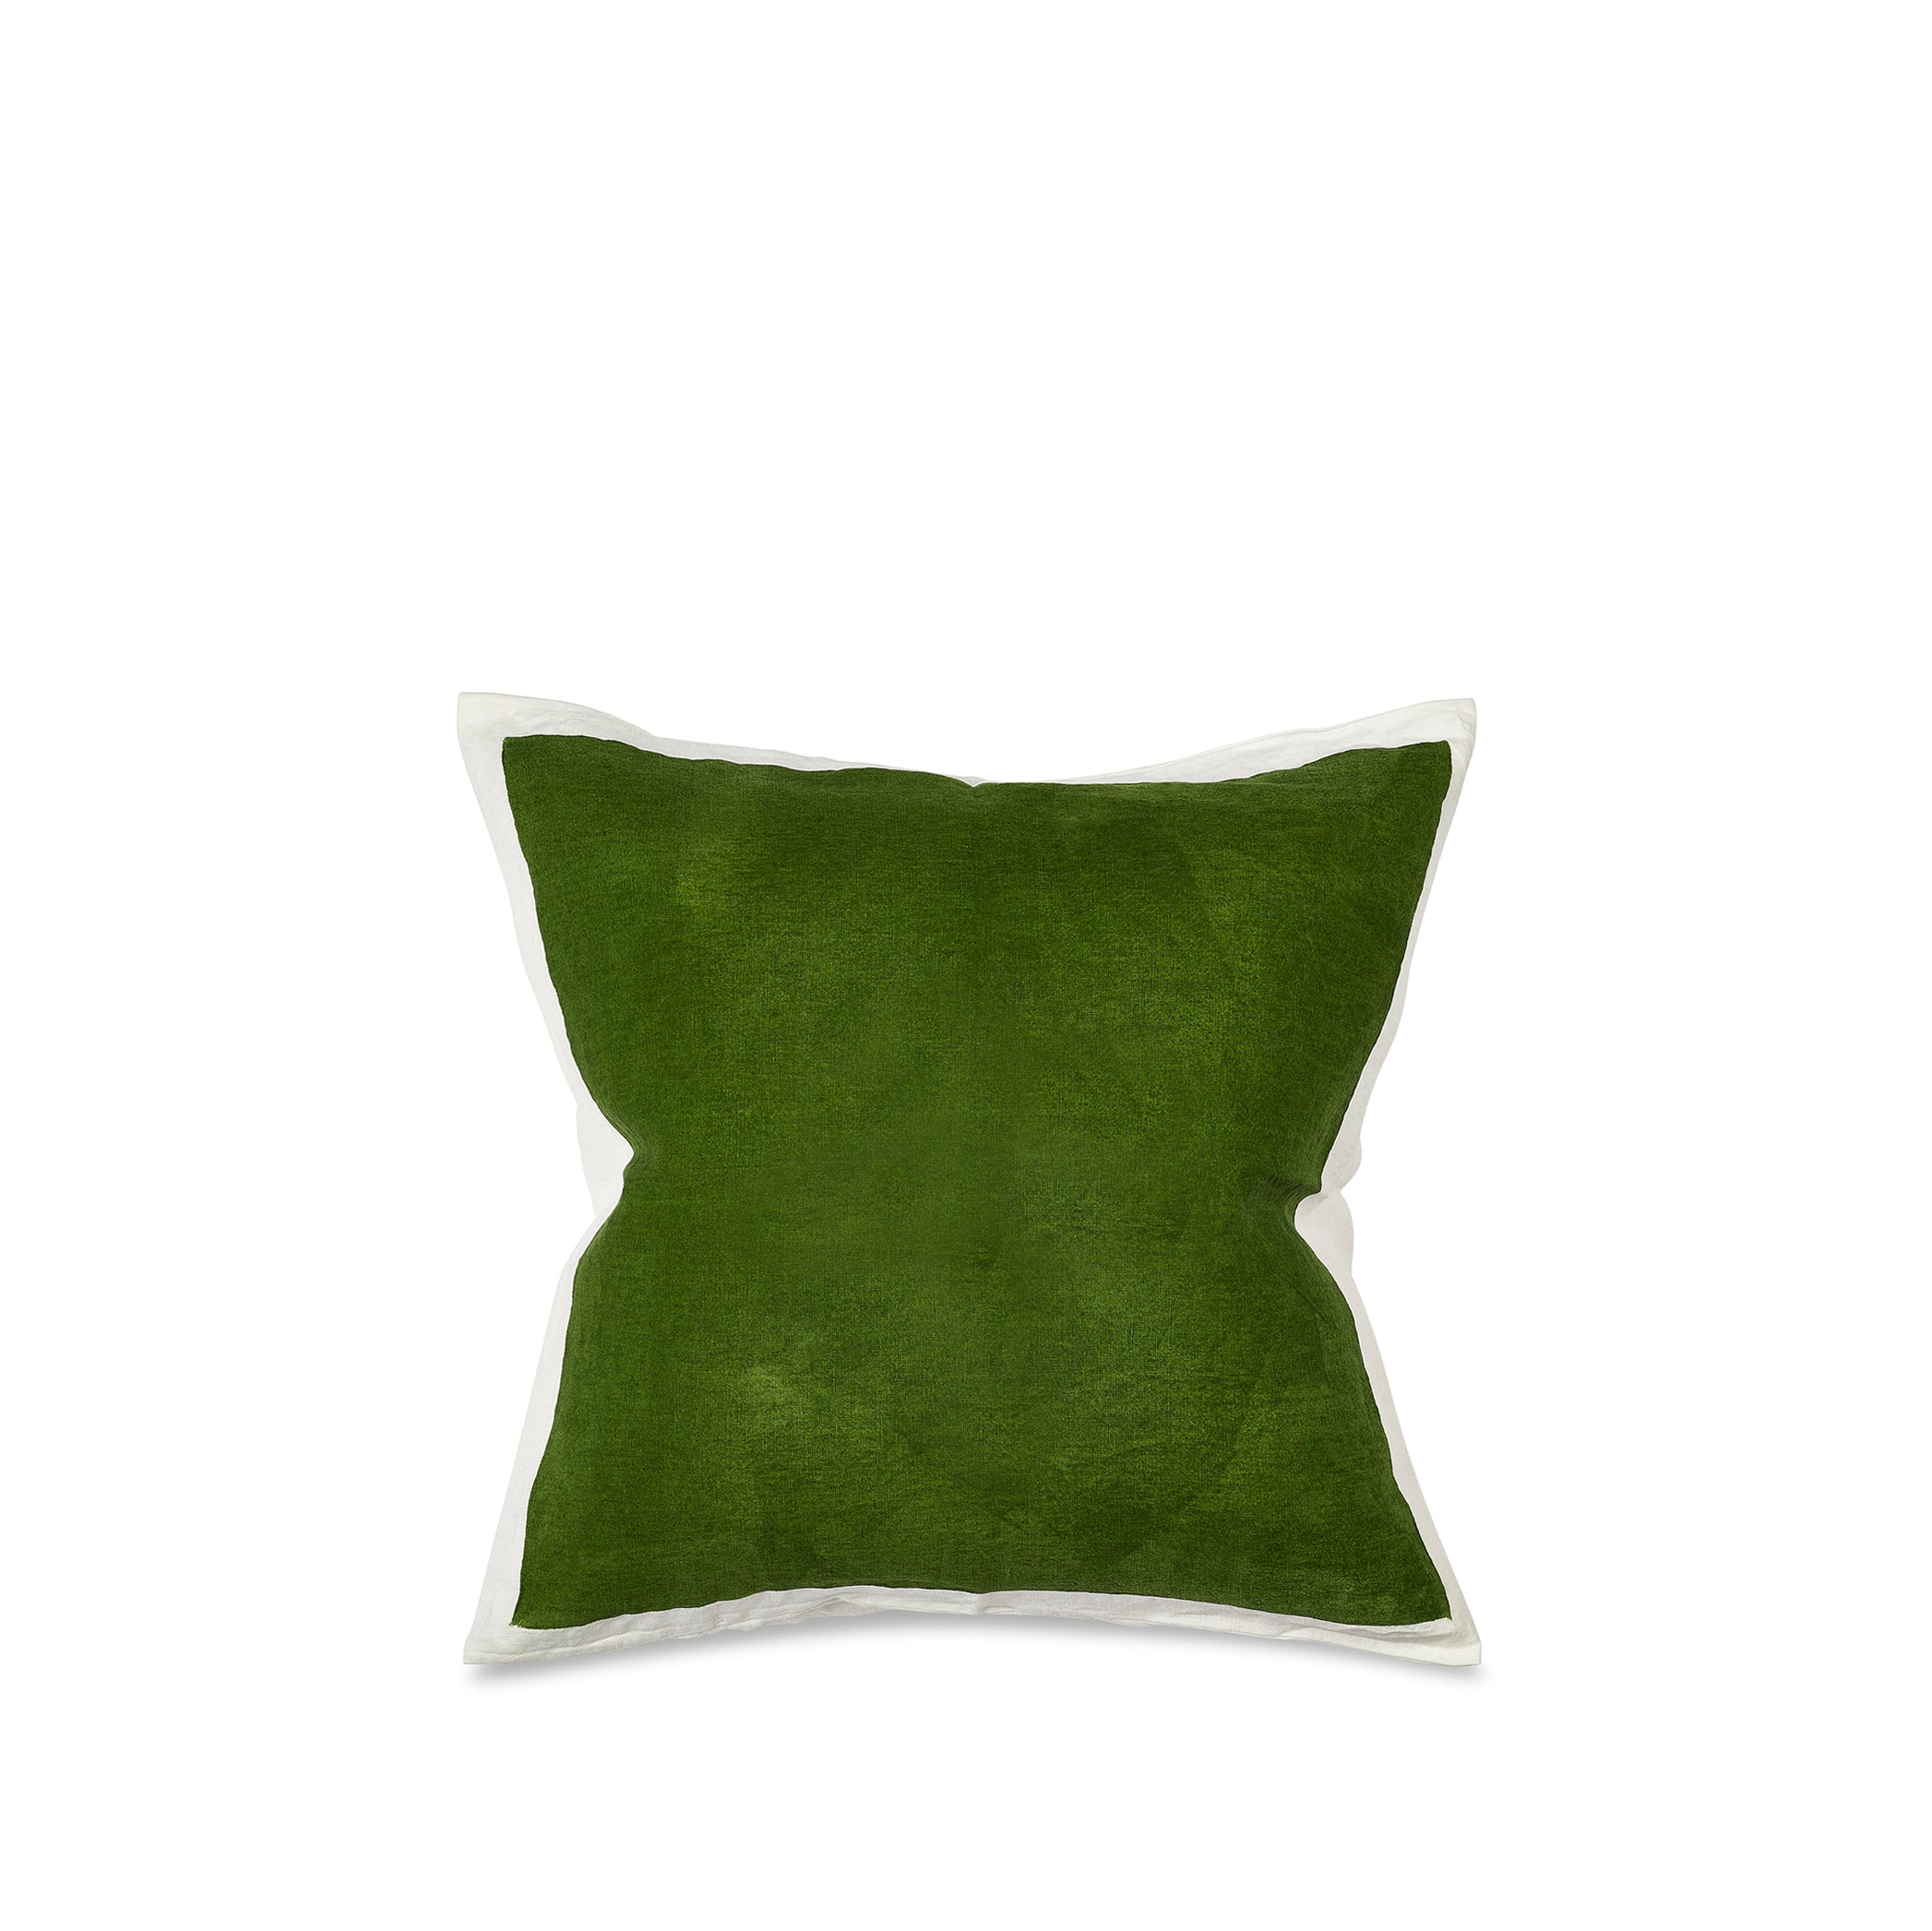 Hand Painted Linen Cushion in Avocado Green, 50cm x 50cm